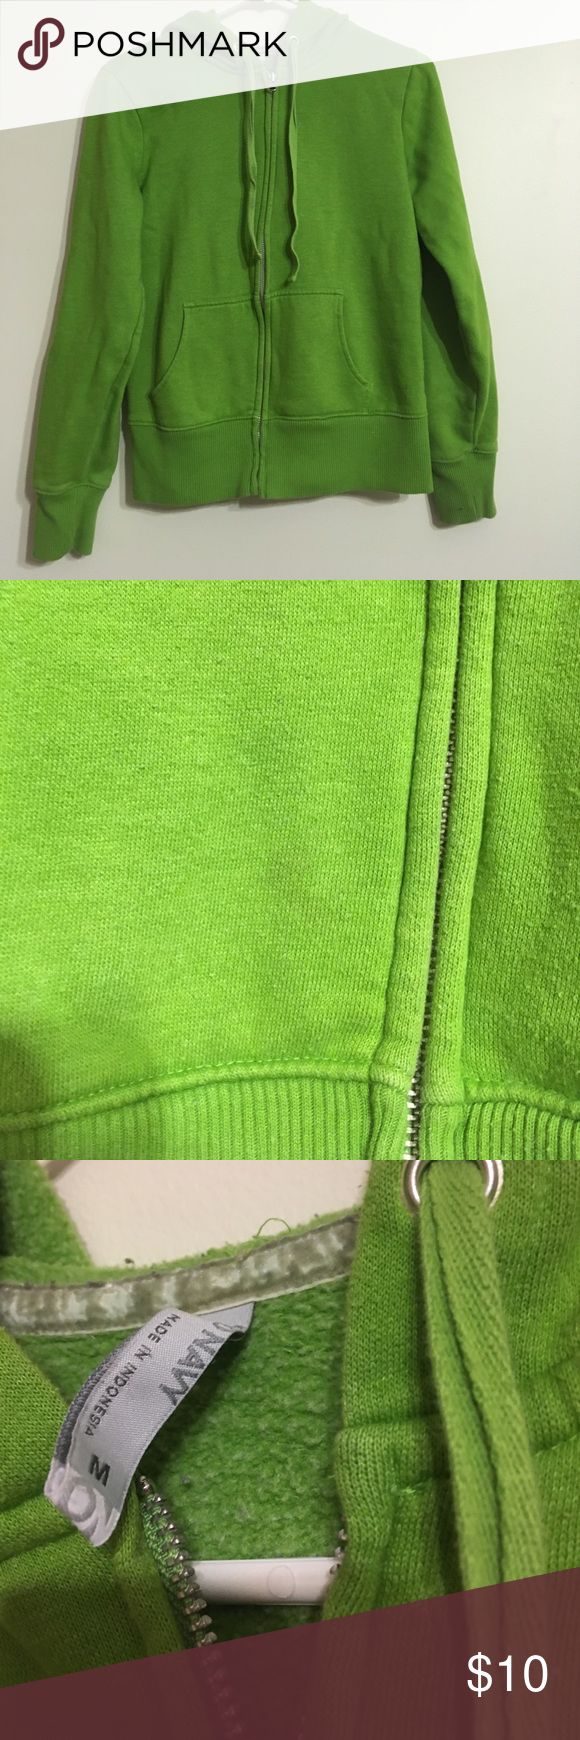 Green zip up hoodie, size M Green zip up hoodie, size M, old navy small not noticeable stain on pocket (smoke free, pet friendly home) Old Navy Tops Sweatshirts & Hoodies